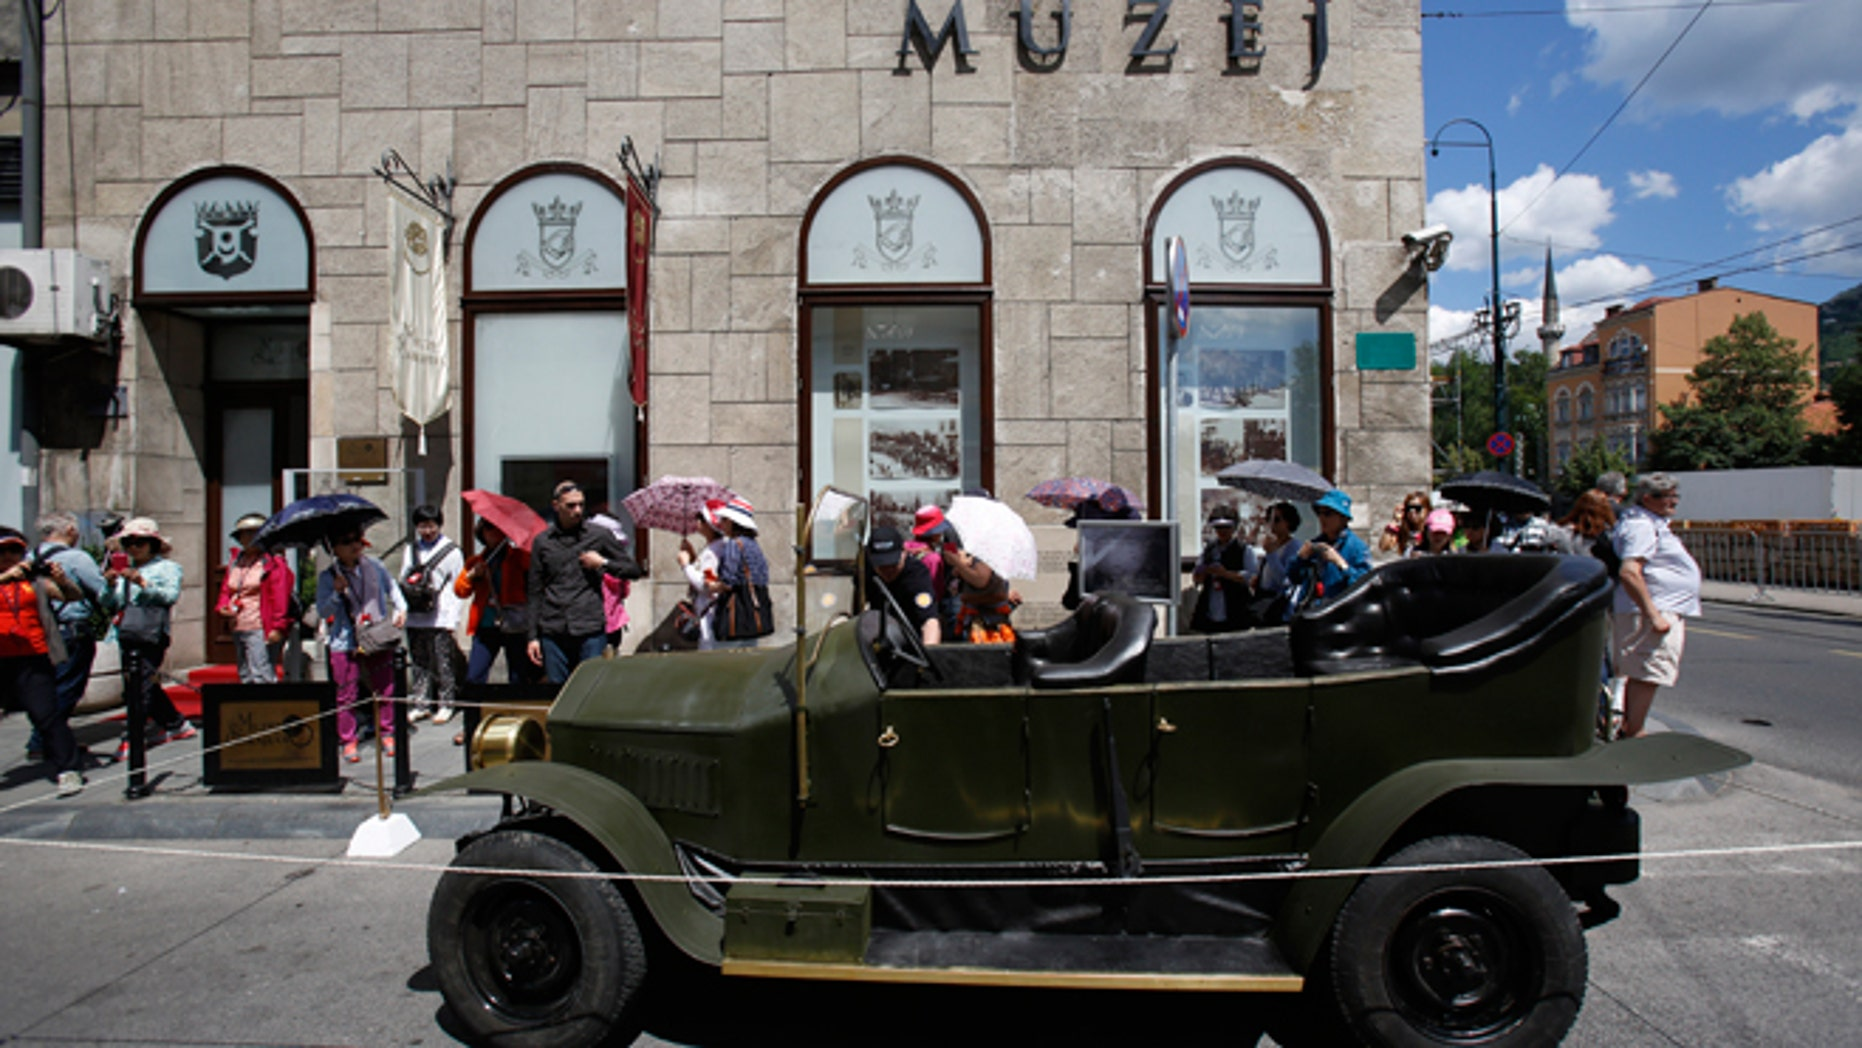 """Tourists gather on Friday, June 27, 2014, around replica of the """"Graf & Stift"""" car that Archduke Franz Ferdinand and his wife Sofia rode in as it is parked in front of museum at the historical street corner in downtown Sarajevo, where Gavrilo Princip, assassinated Austro-Hungarian heir to the throne Archduke Franz Ferdinand and his wife Sofia, on June 28, 1914. The assassination was the event that ignited the start of World War One."""